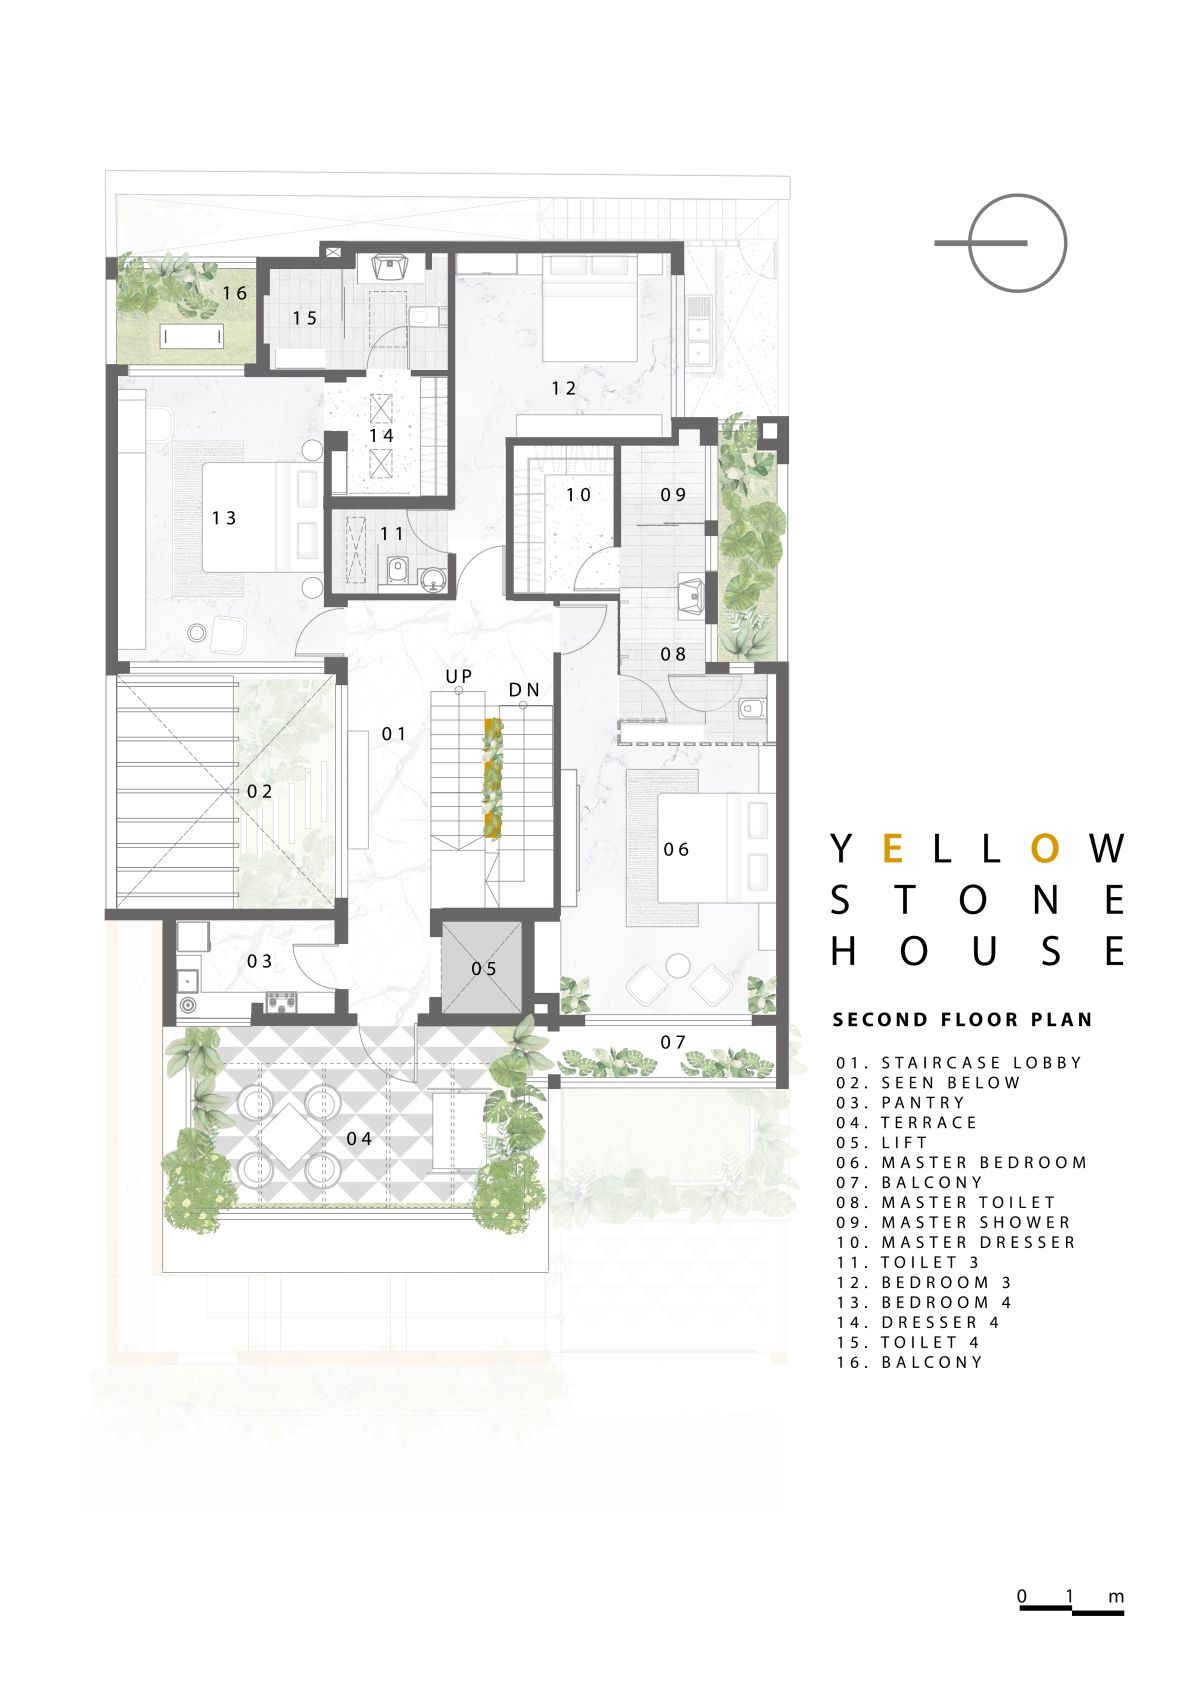 Yellow Stone House, at Indore, by Span Architects 63